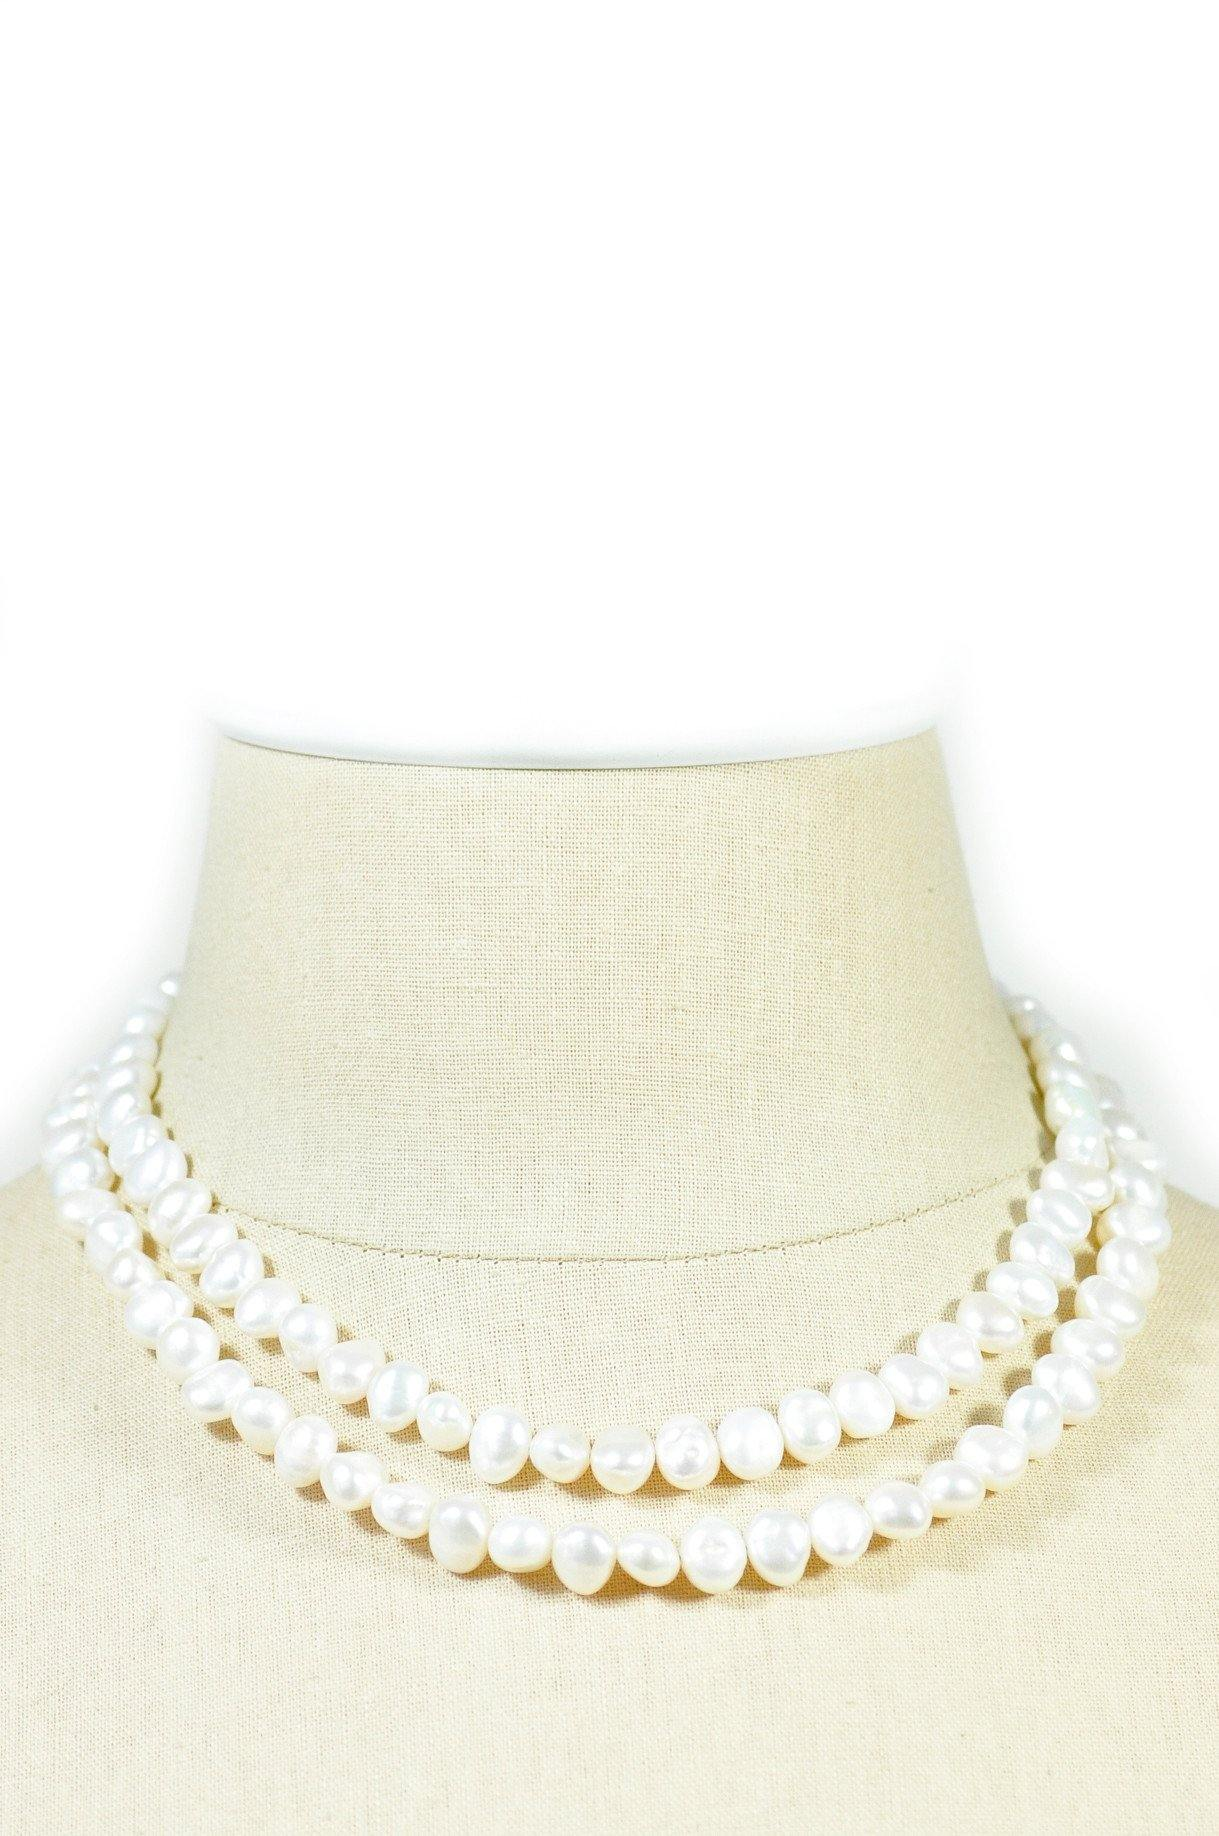 80's__Vintage__Freshwater Pearl Necklace